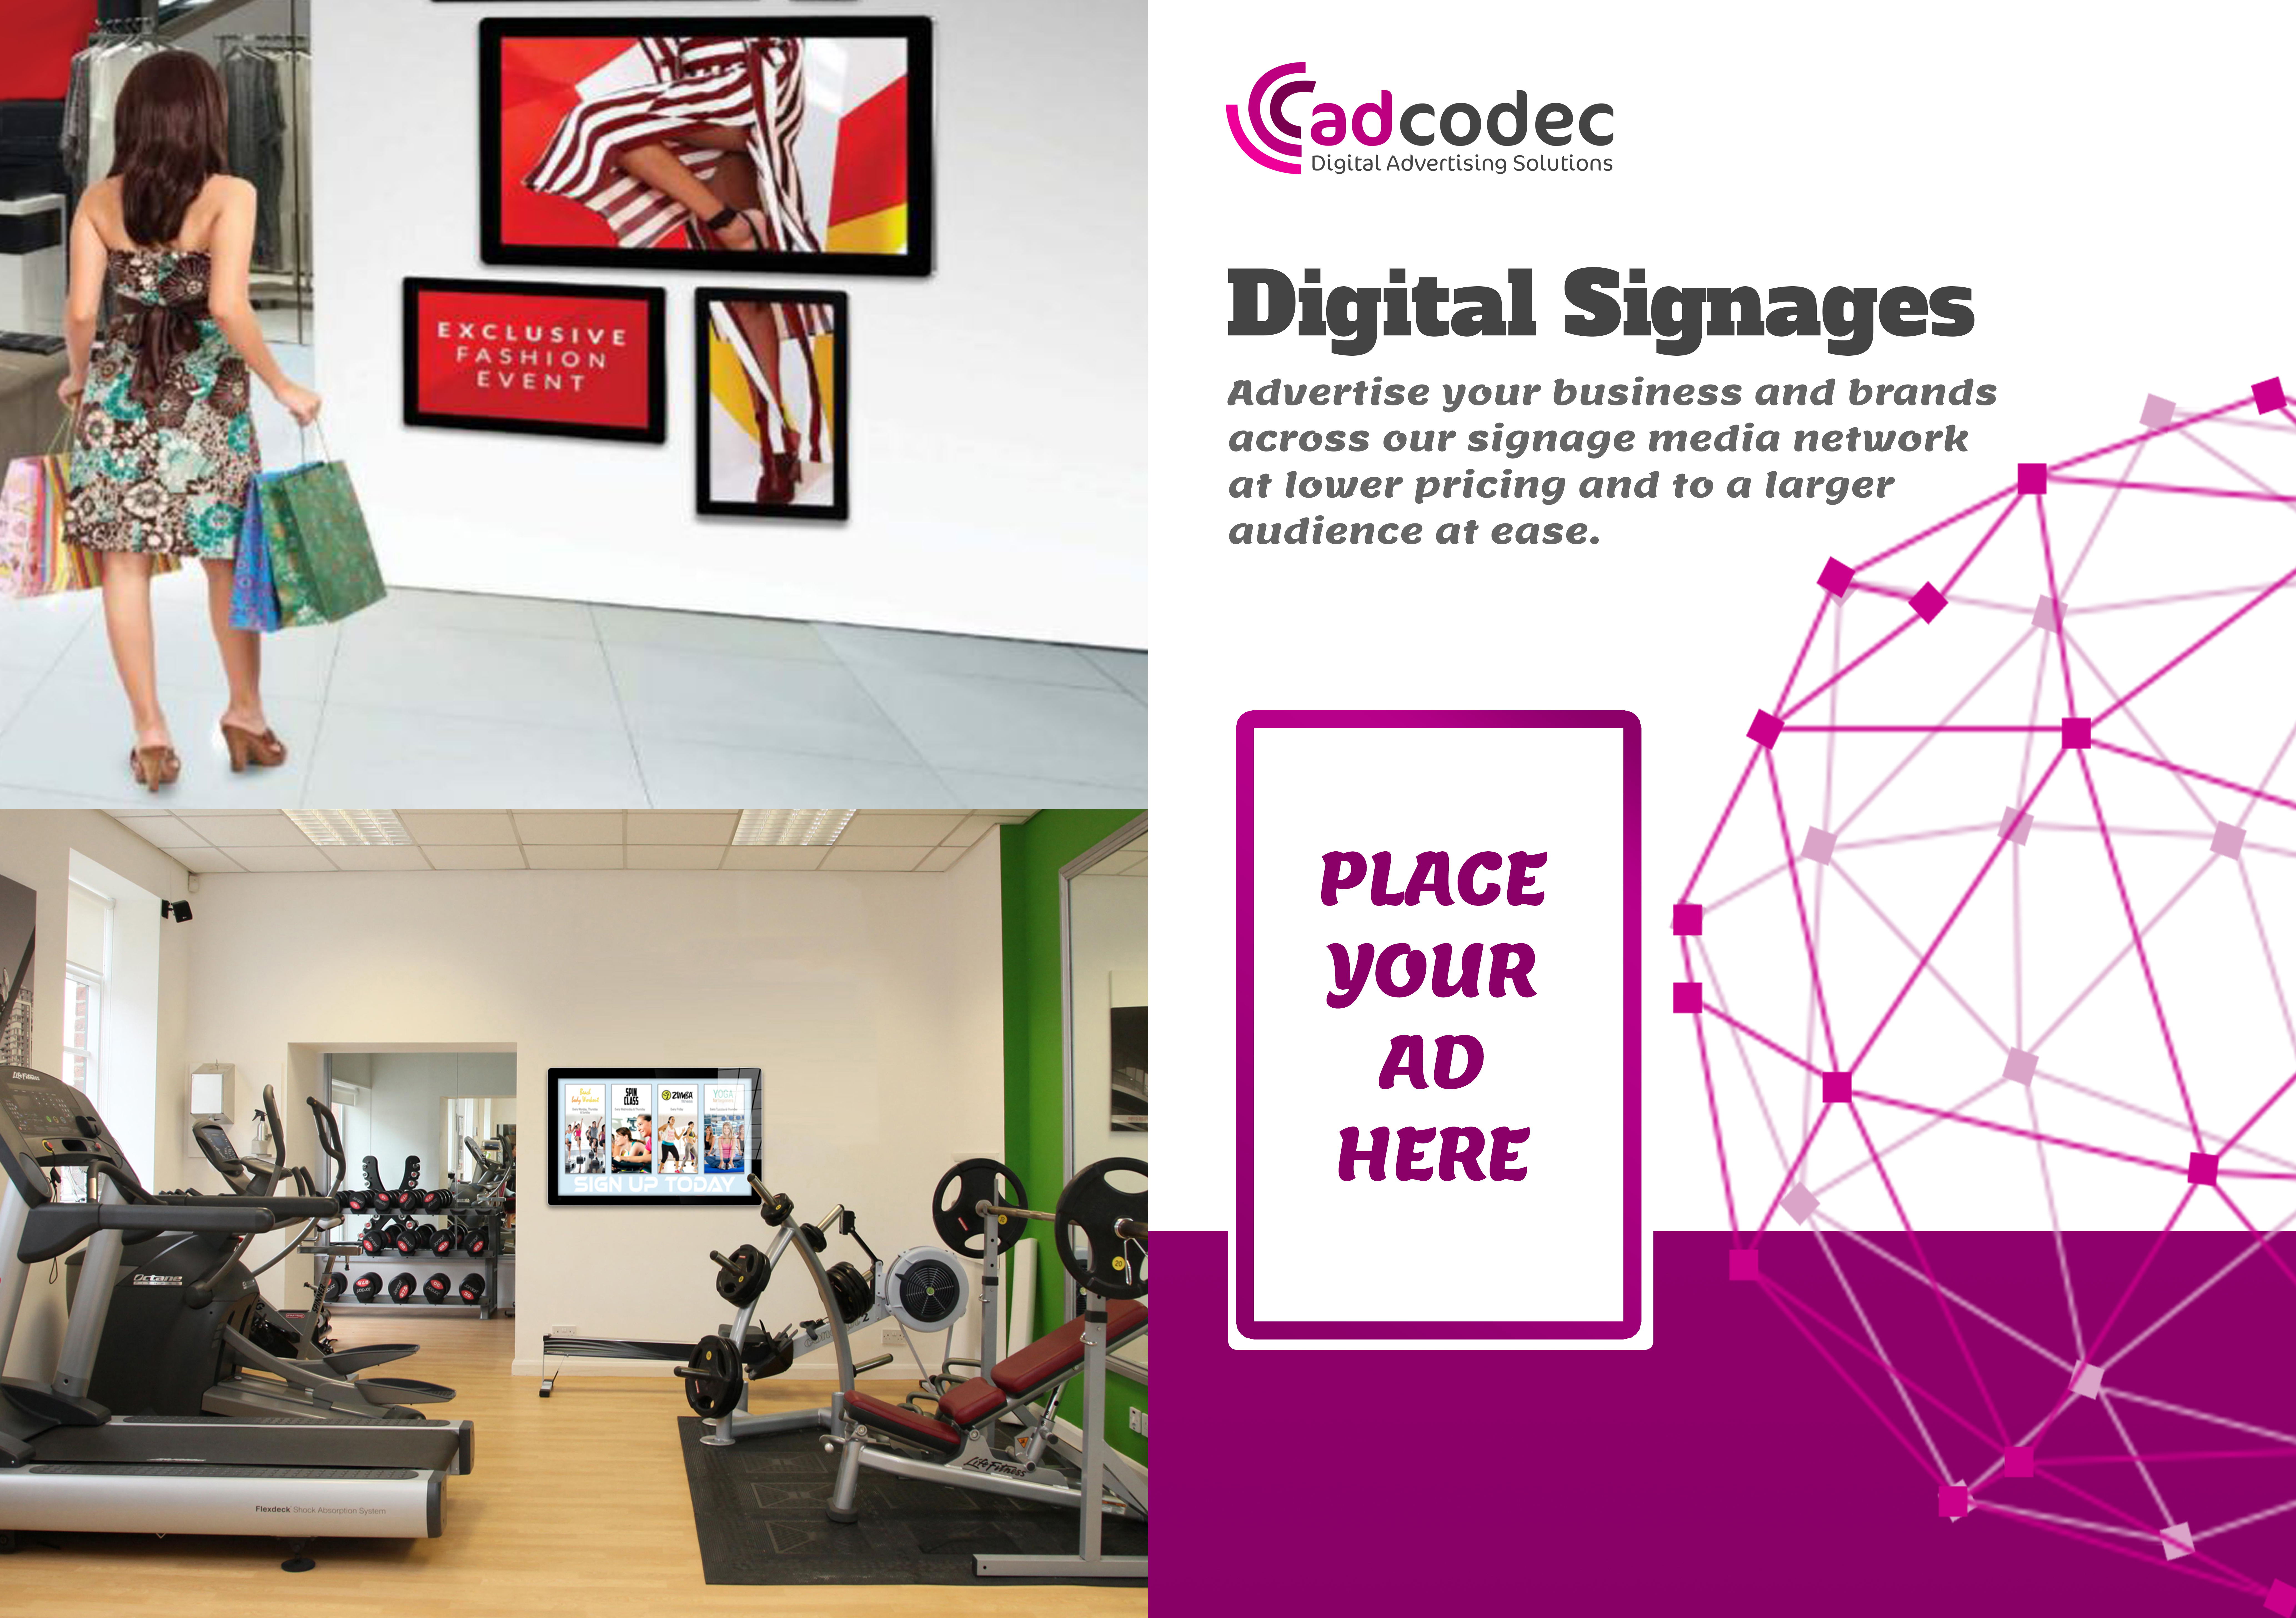 Adcodec India Pvt. Ltd. To Open More Than 25 Locations at Kochi City Kerala, India